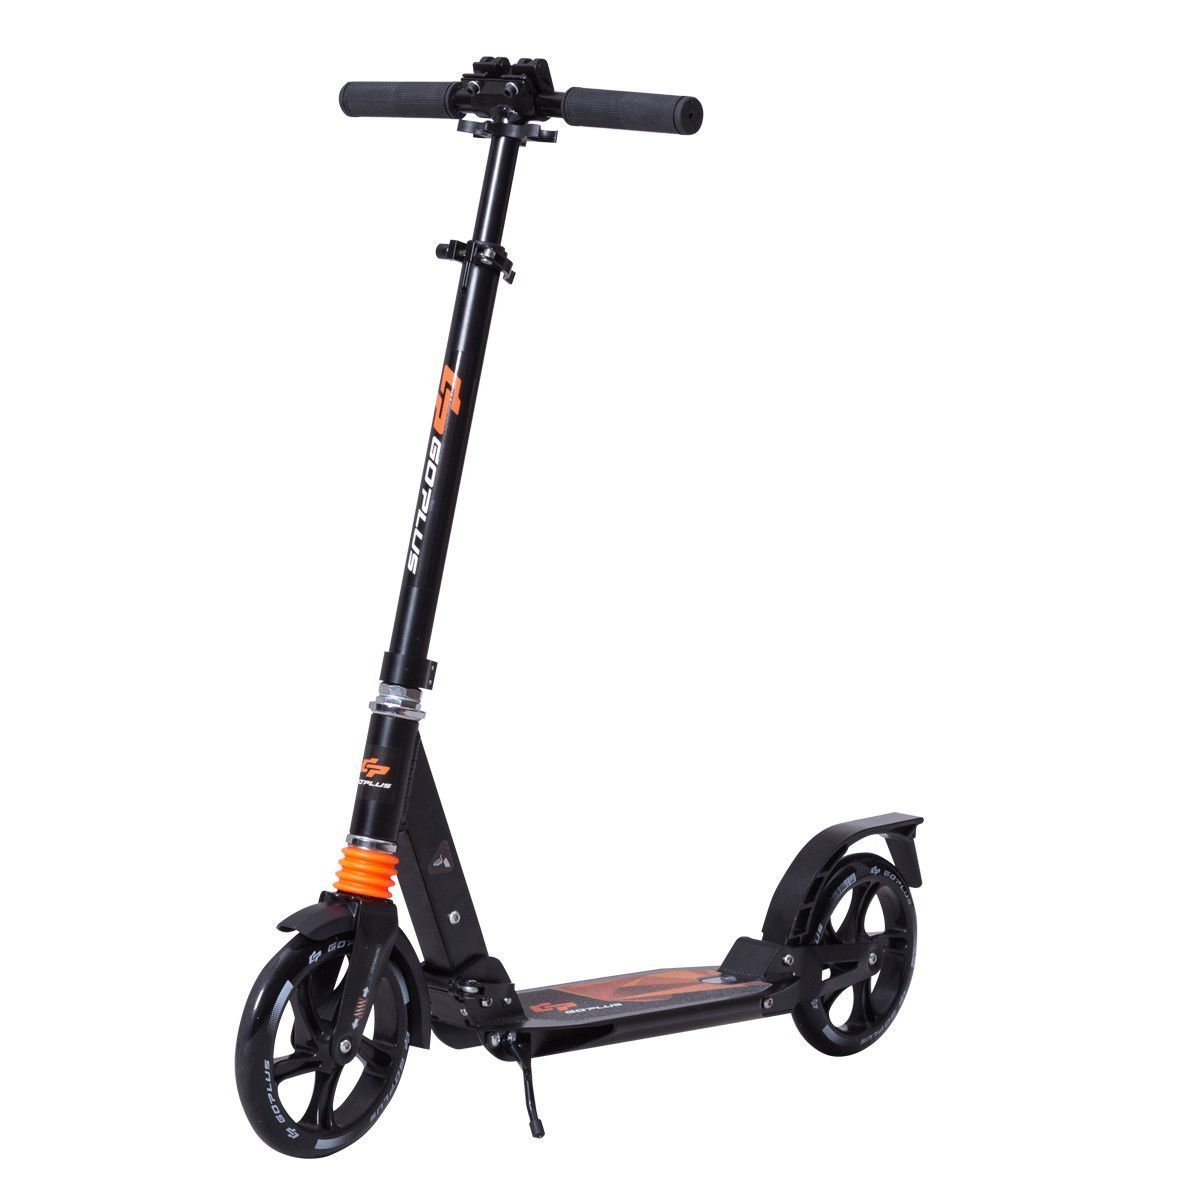 Goplus Folding Kick Scooter for Adult Teen Deluxe Aluminum 2 Big Wheels Glider Adjustable Height w/ Dual Suspension, 220lbs Capacity, Black by Goplus